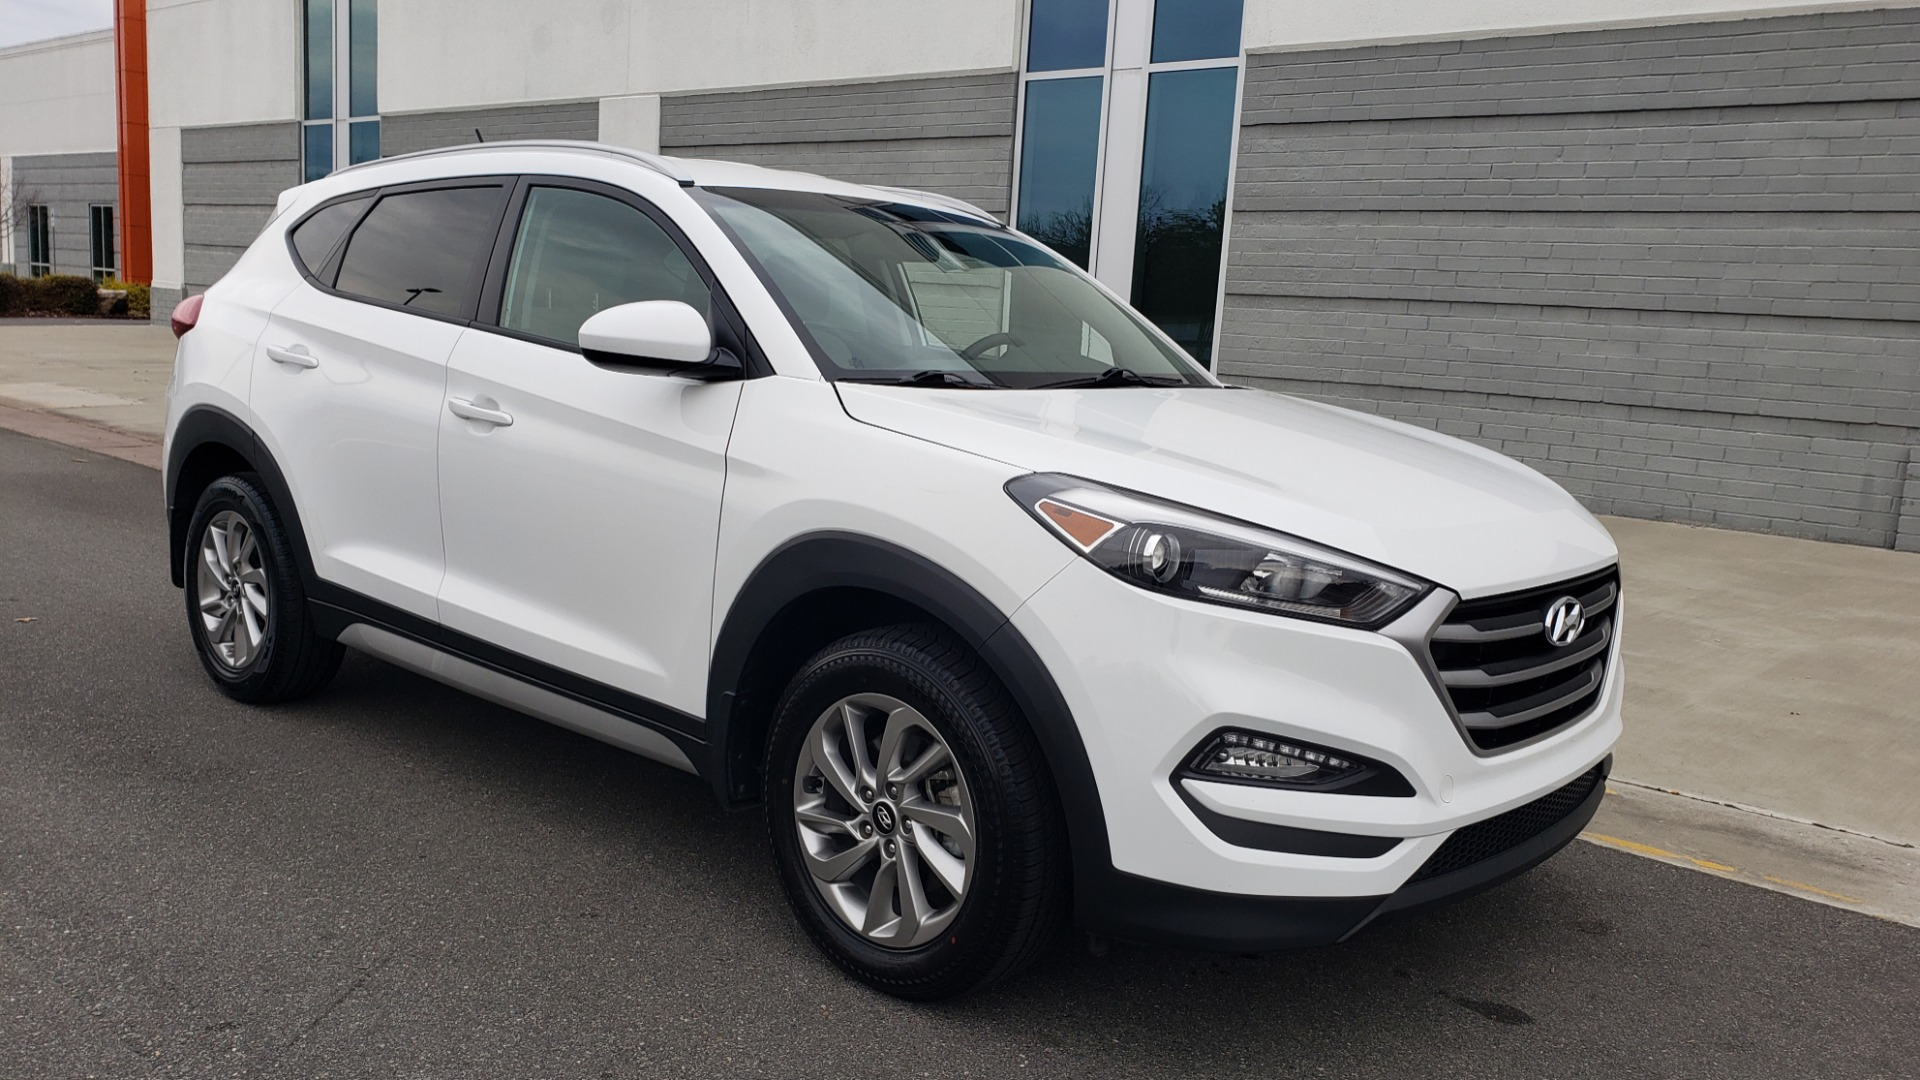 Used 2017 Hyundai TUCSON SE / 2.0L / 6-SPD AUTO / CLOTH / REARVIEW CAMERA for sale Sold at Formula Imports in Charlotte NC 28227 6